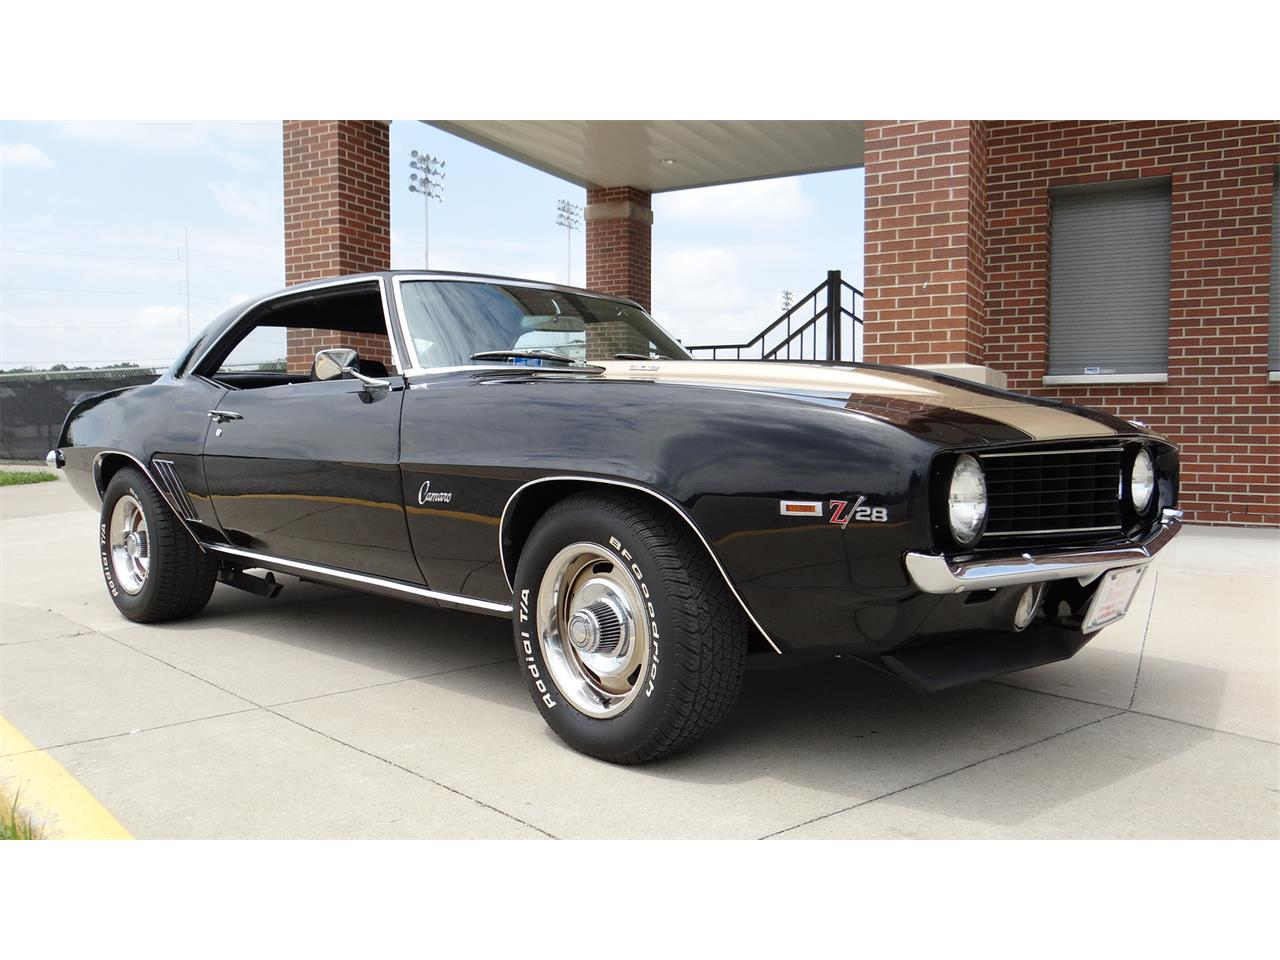 For Sale: 1969 Chevrolet Camaro Z28 in Davenport, Iowa